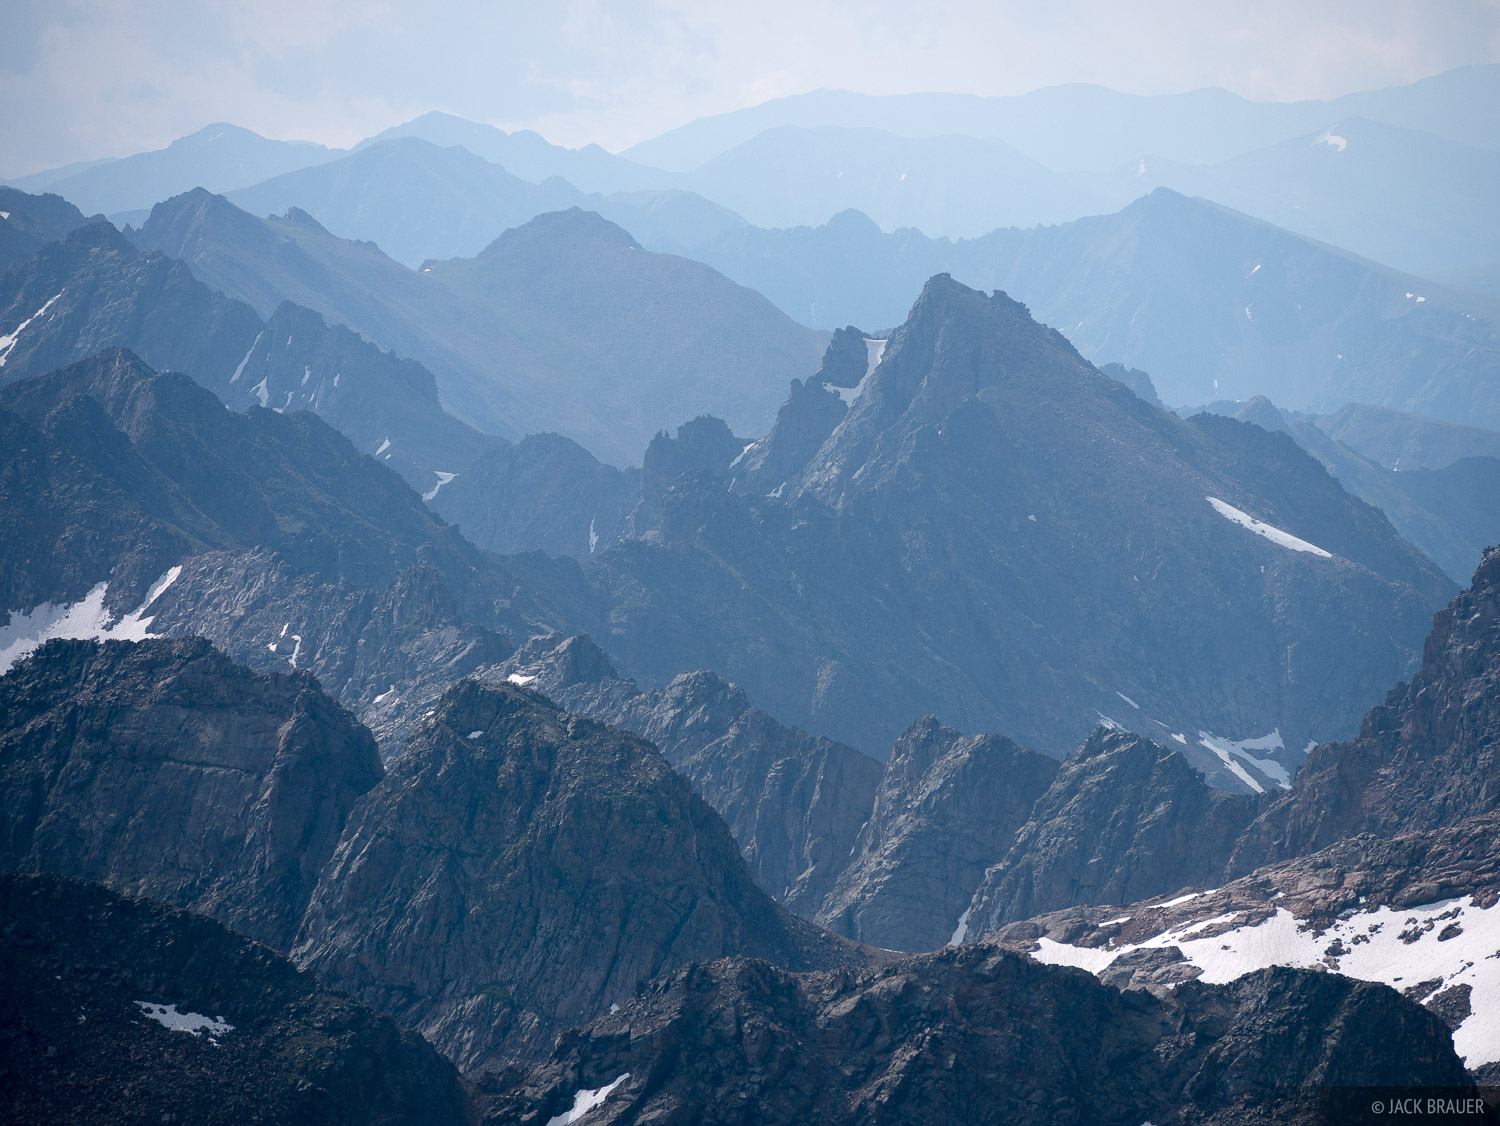 Colorado, Gore Range, Mount Powell, Eagles Nest Wilderness, photo